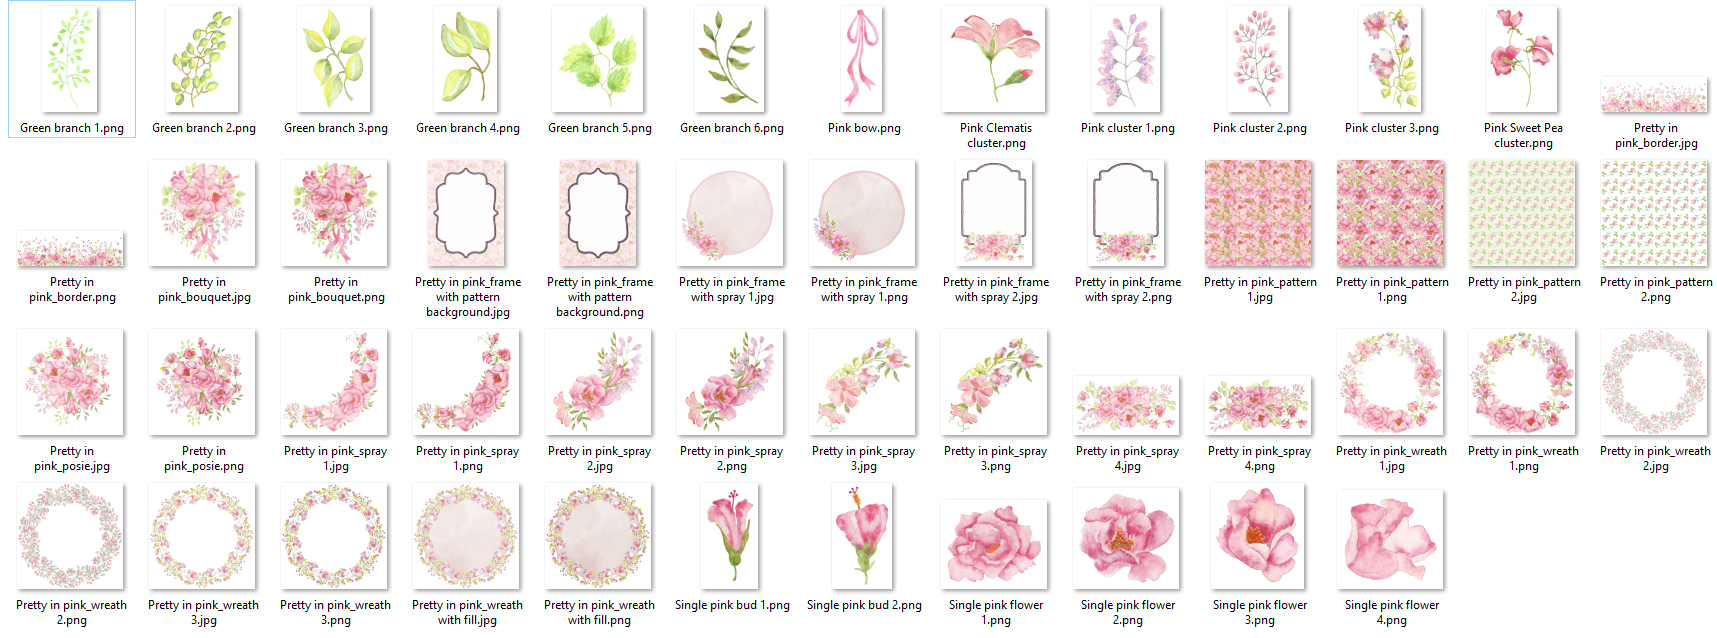 Free download, high quality premium png files, beautiful bank color flower decorations